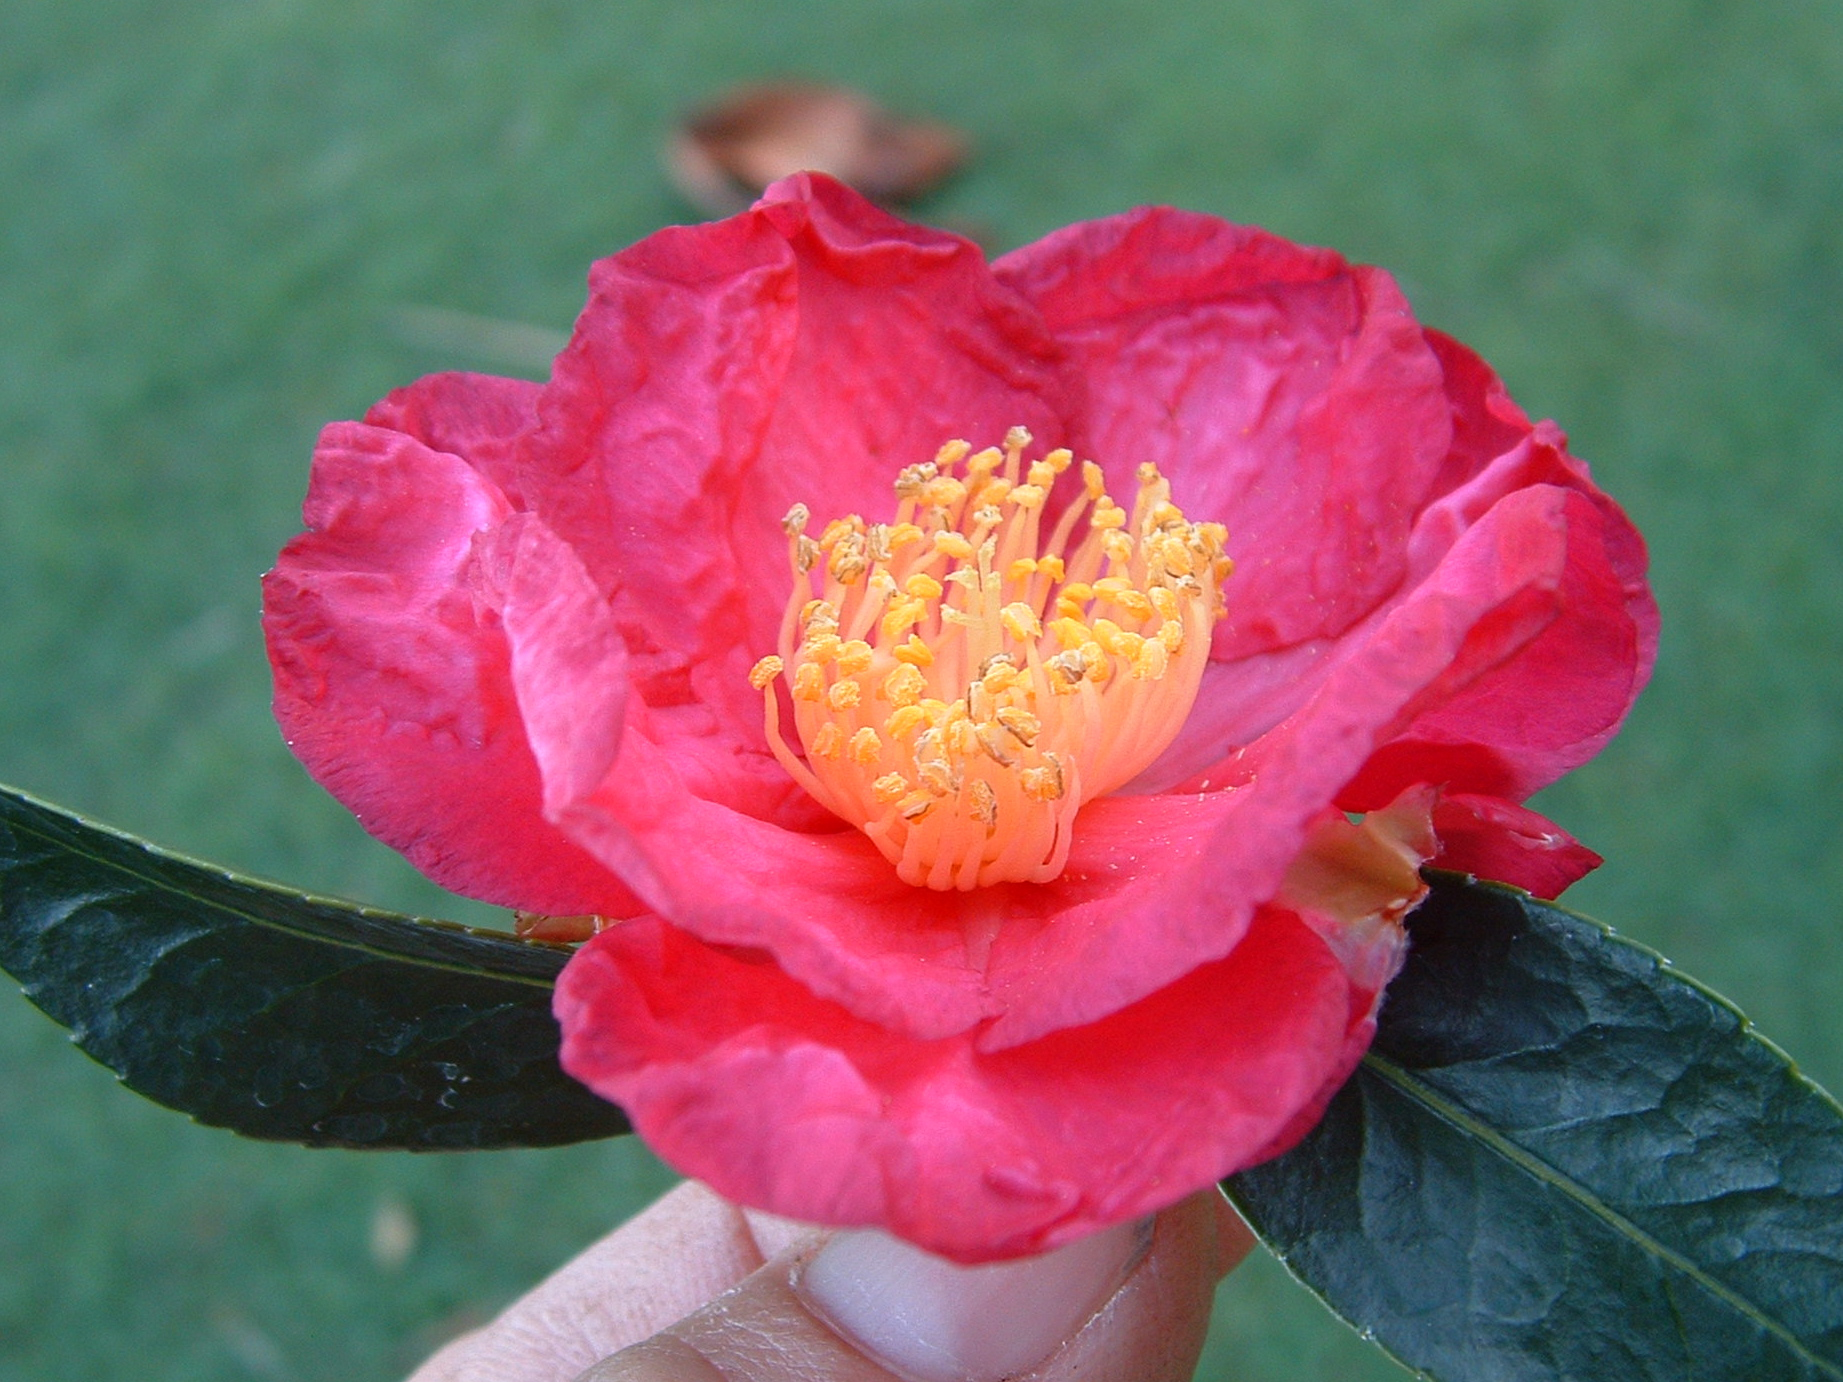 Camellia listing camellia glen nursery crimson tide large deep crimson red semi double with ruffled petals dense bush early mightylinksfo